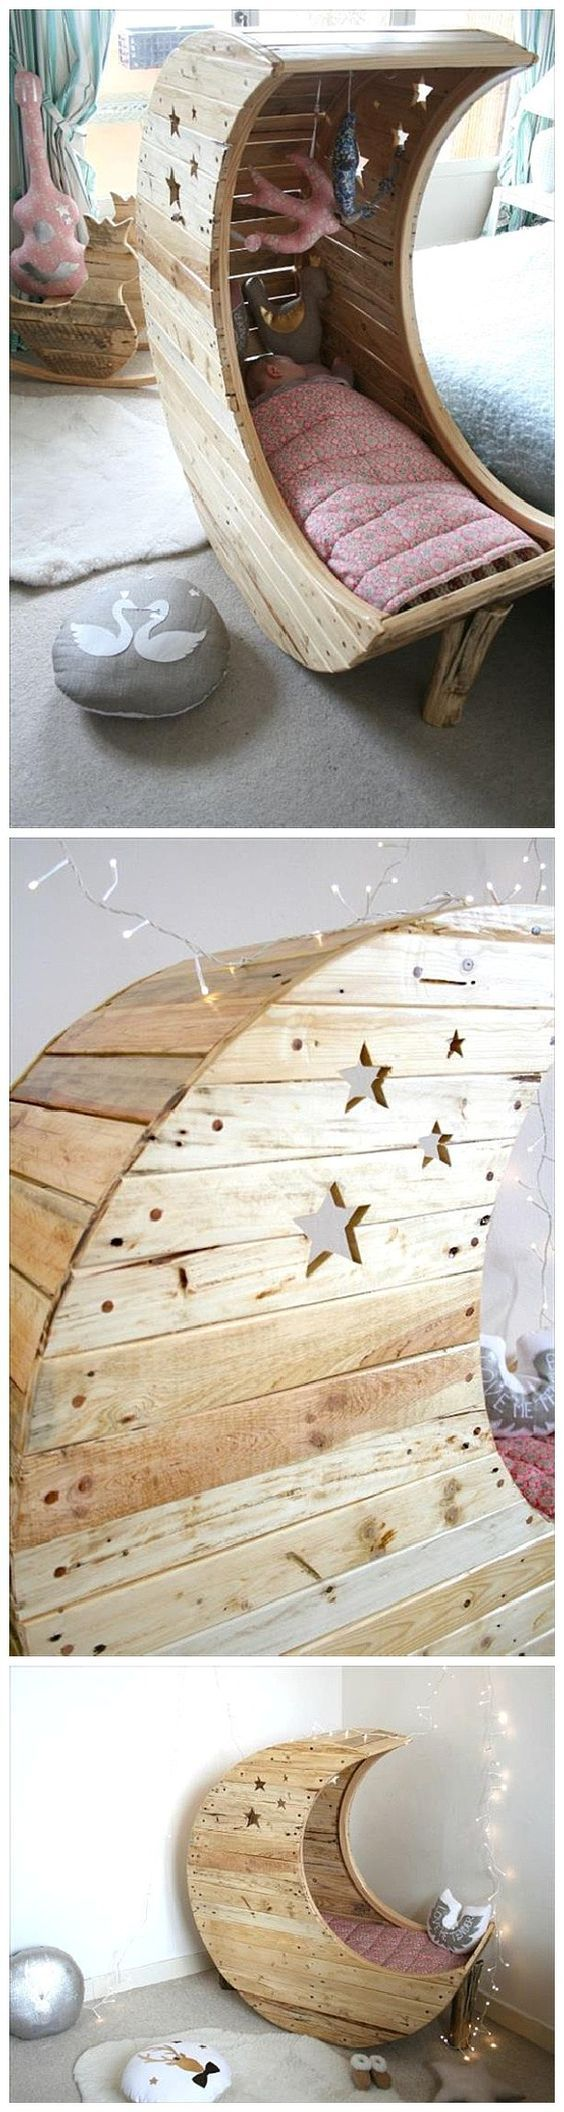 Best 25 baby woodworking projects ideas on pinterest best 25 baby woodworking projects ideas on pinterest woodworking ideas baby woodworking ideas for baby and pallet upcycle ideas solutioingenieria Image collections